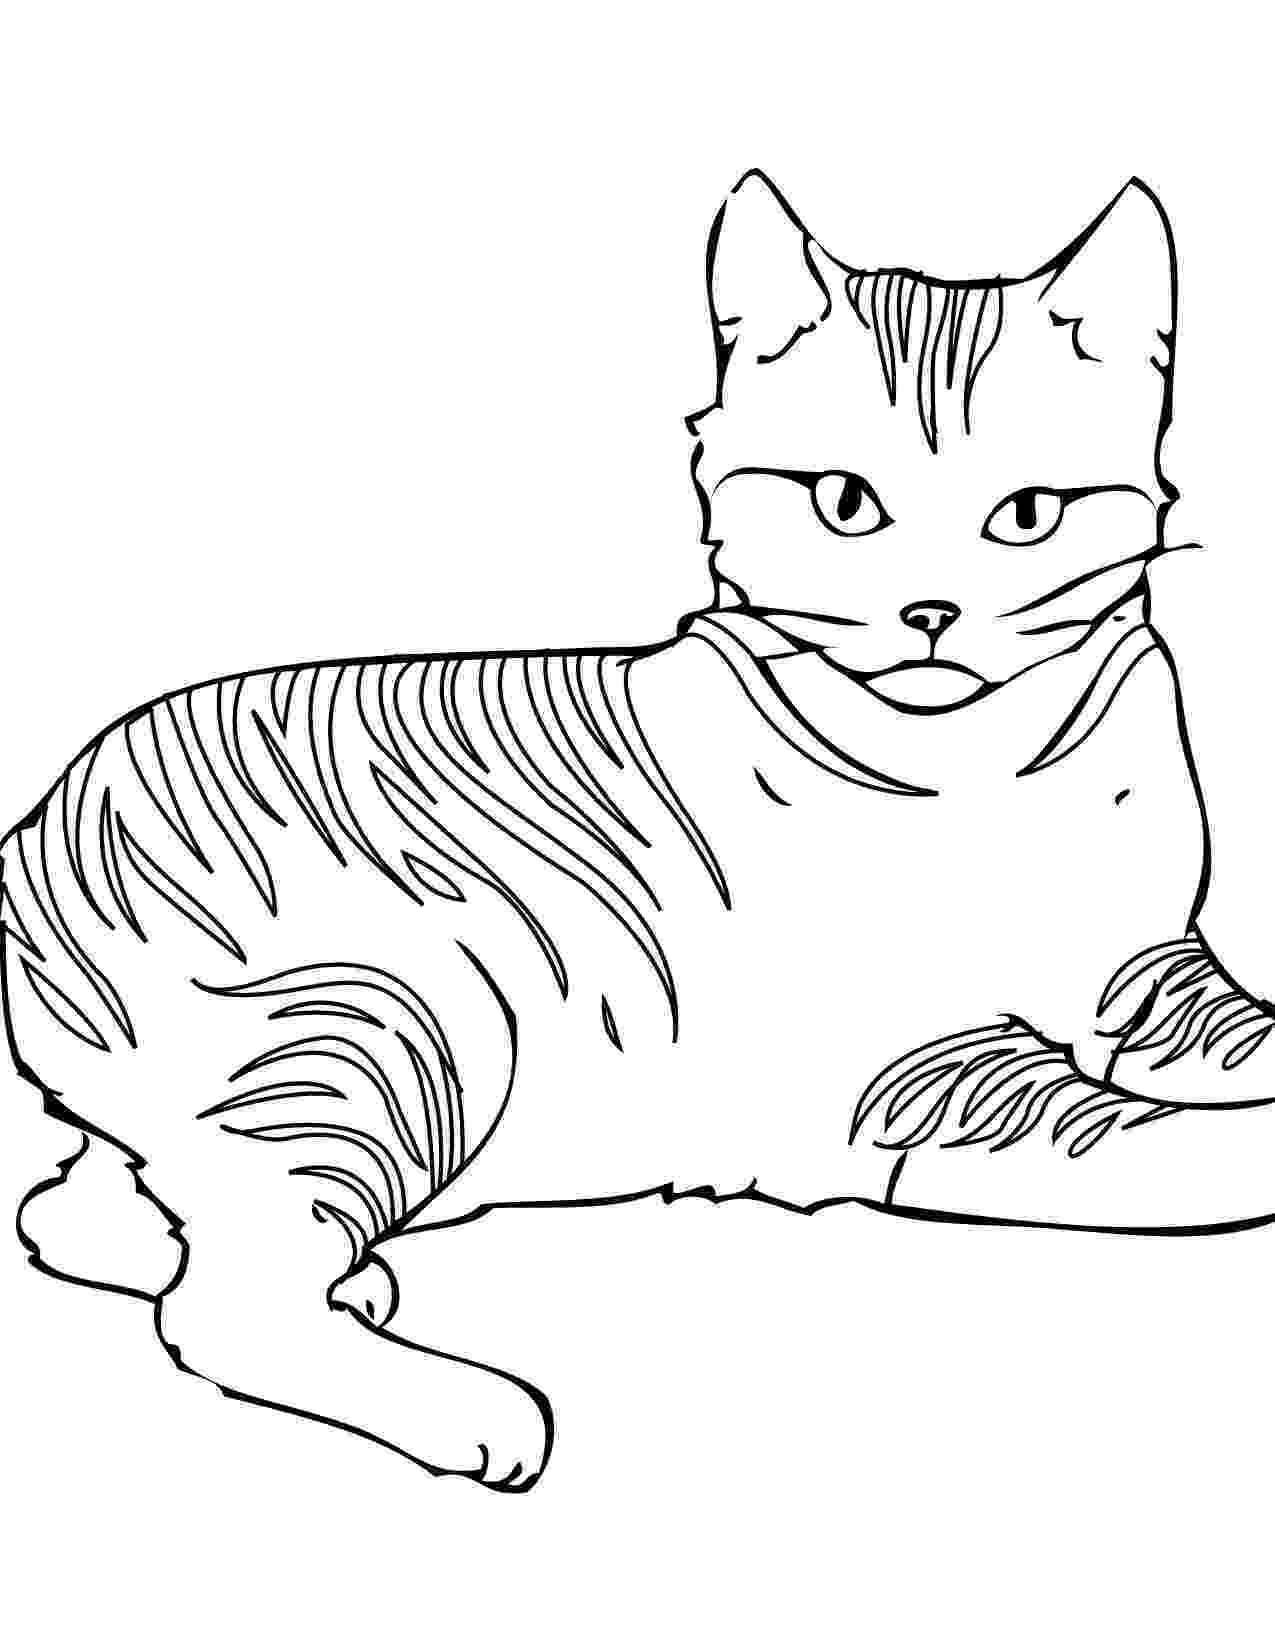 cat pictures for kids to color free printable cat coloring pages for kids cool2bkids for cat pictures color kids to